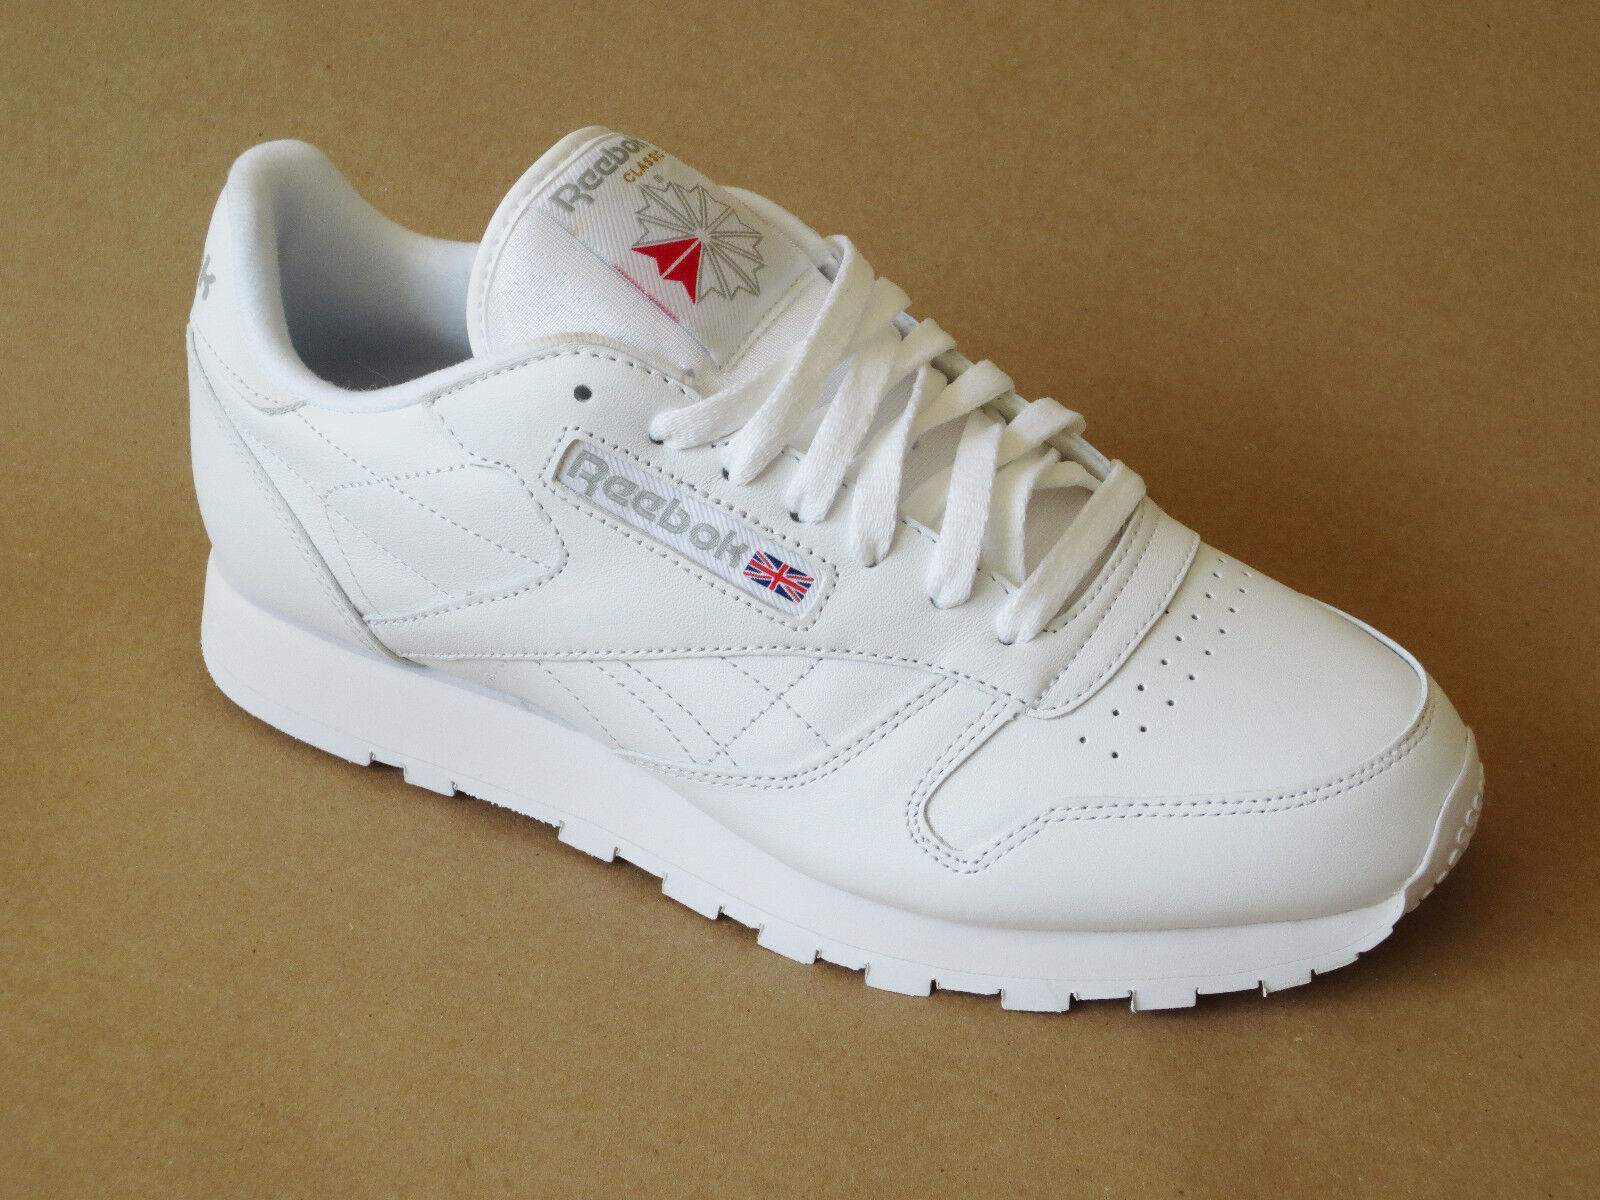 85b31f863c3c Reebok Mens Classic Leather Casual Shoes Sneakers New White фото